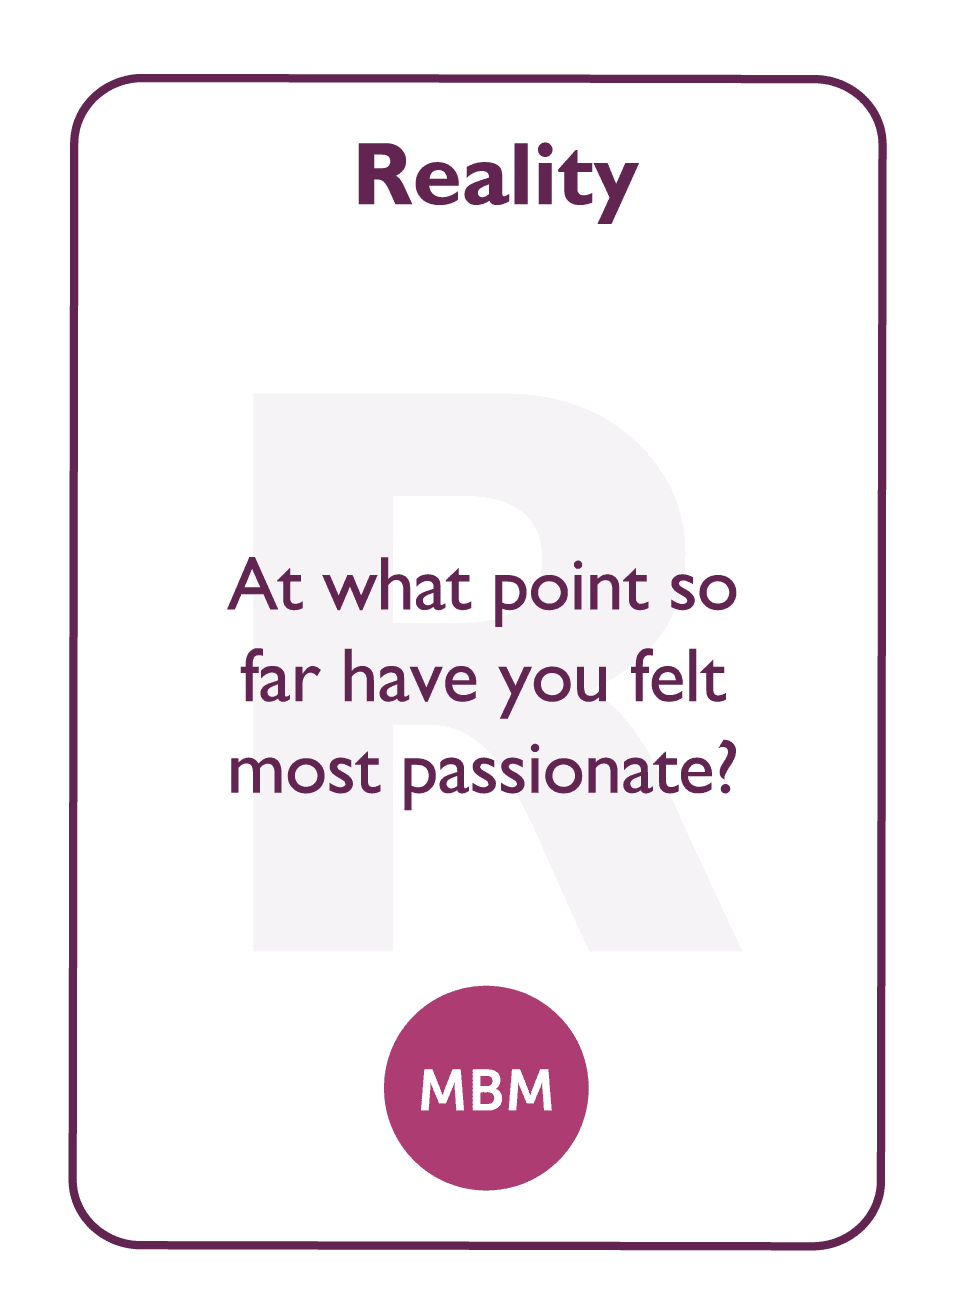 Coaching card titled Reality